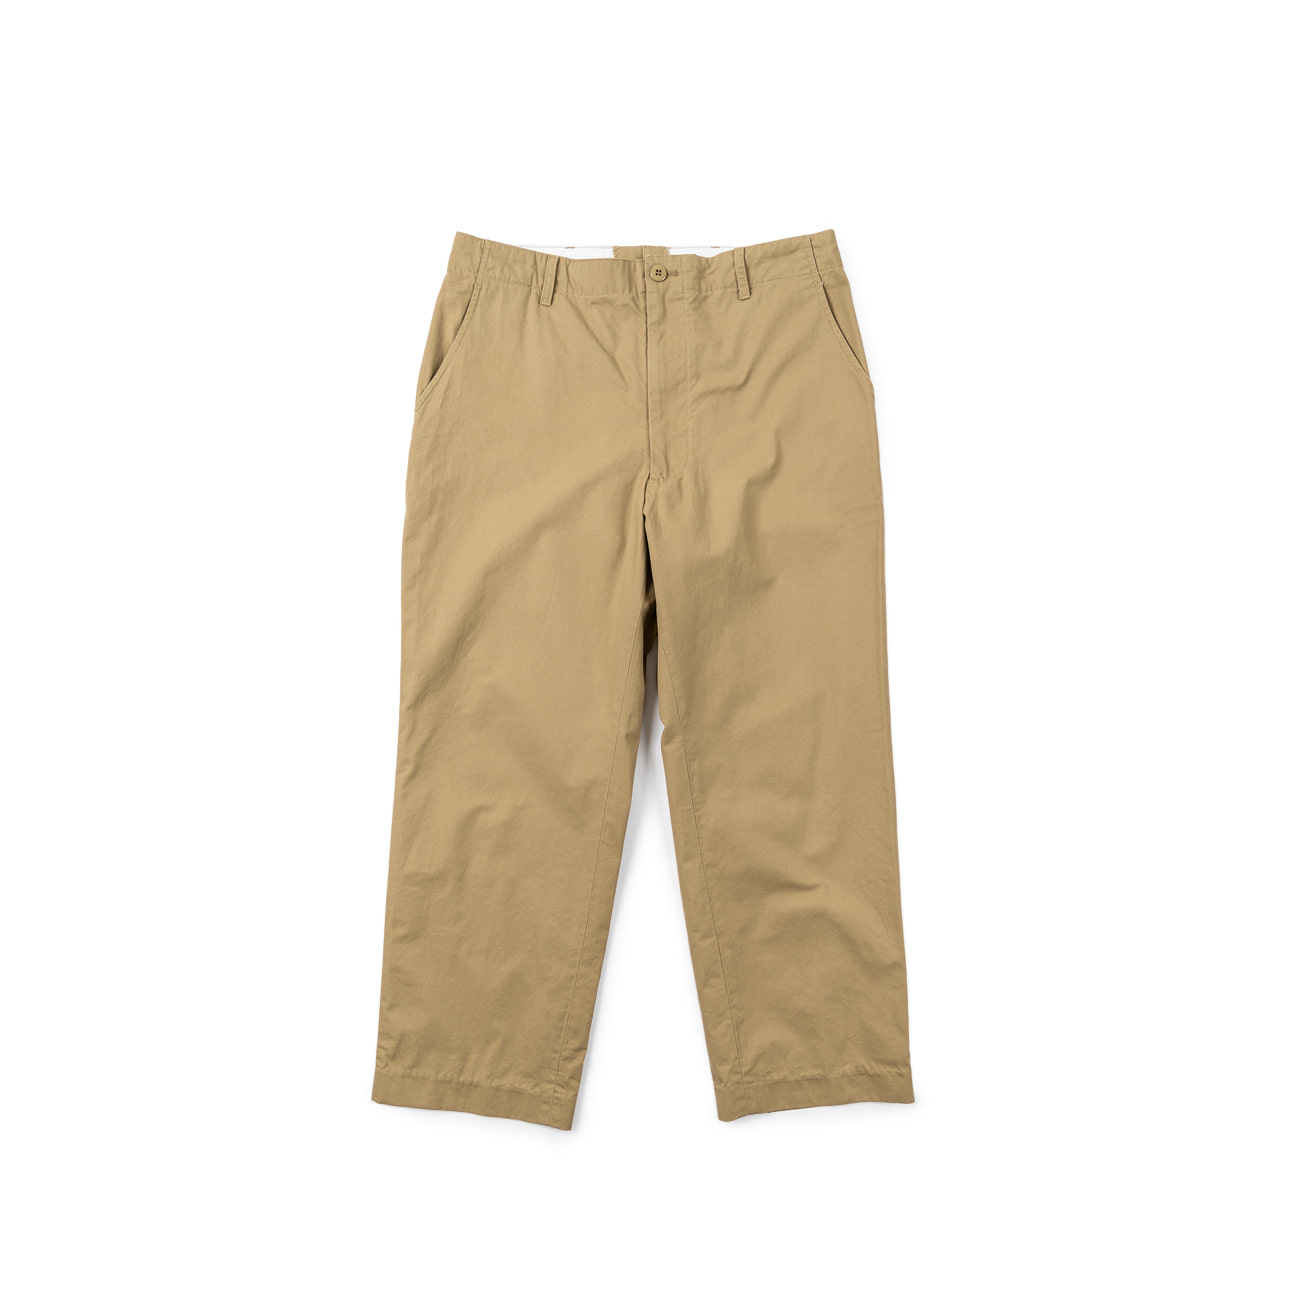 ML Chino Pants